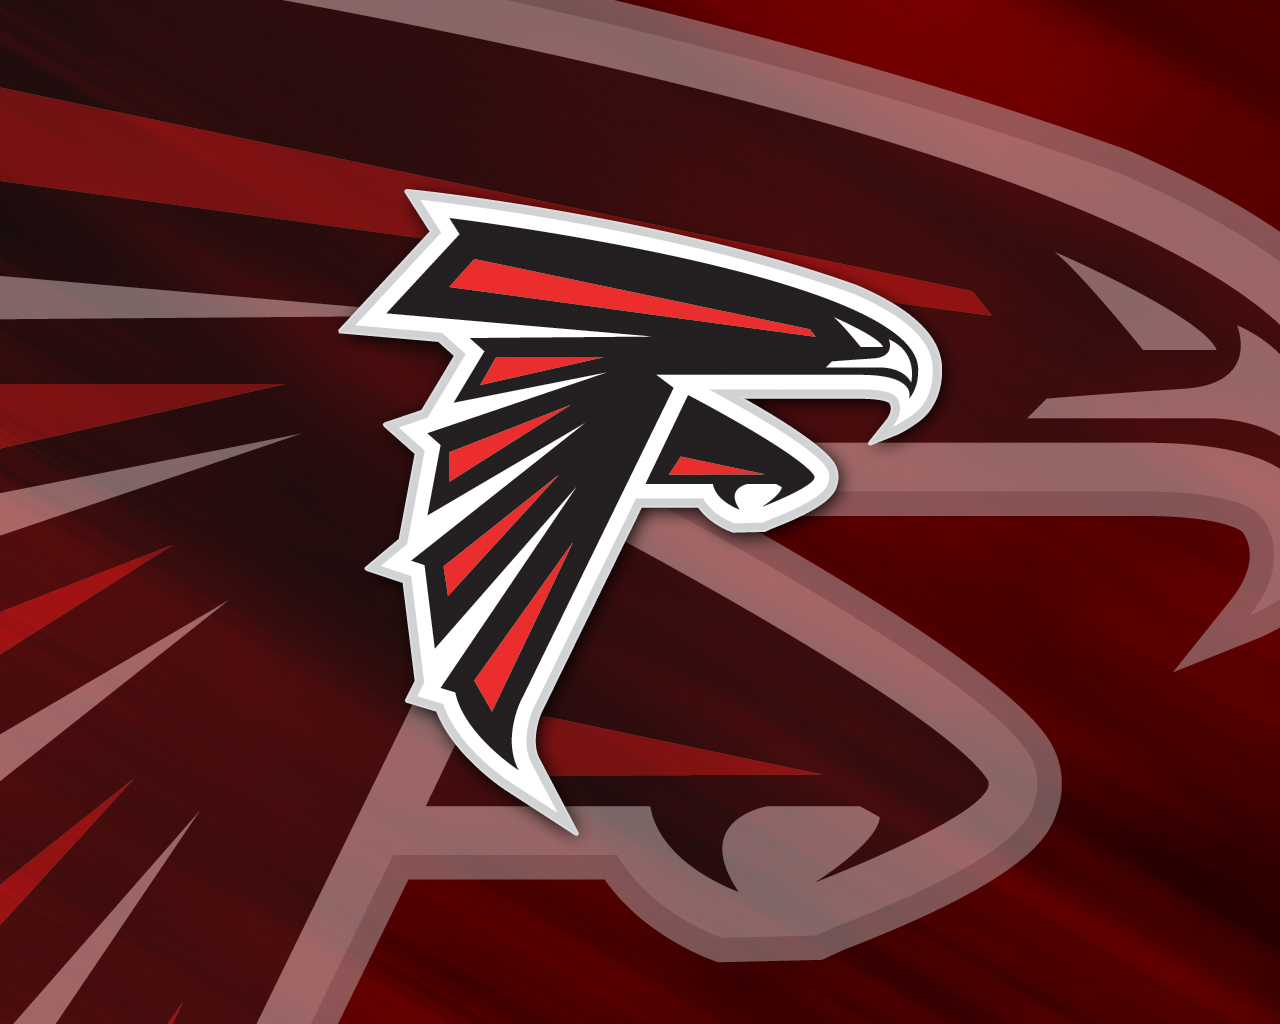 falcons nfl wallpaper share this nfl team wallpaper on facebook 1280x1024